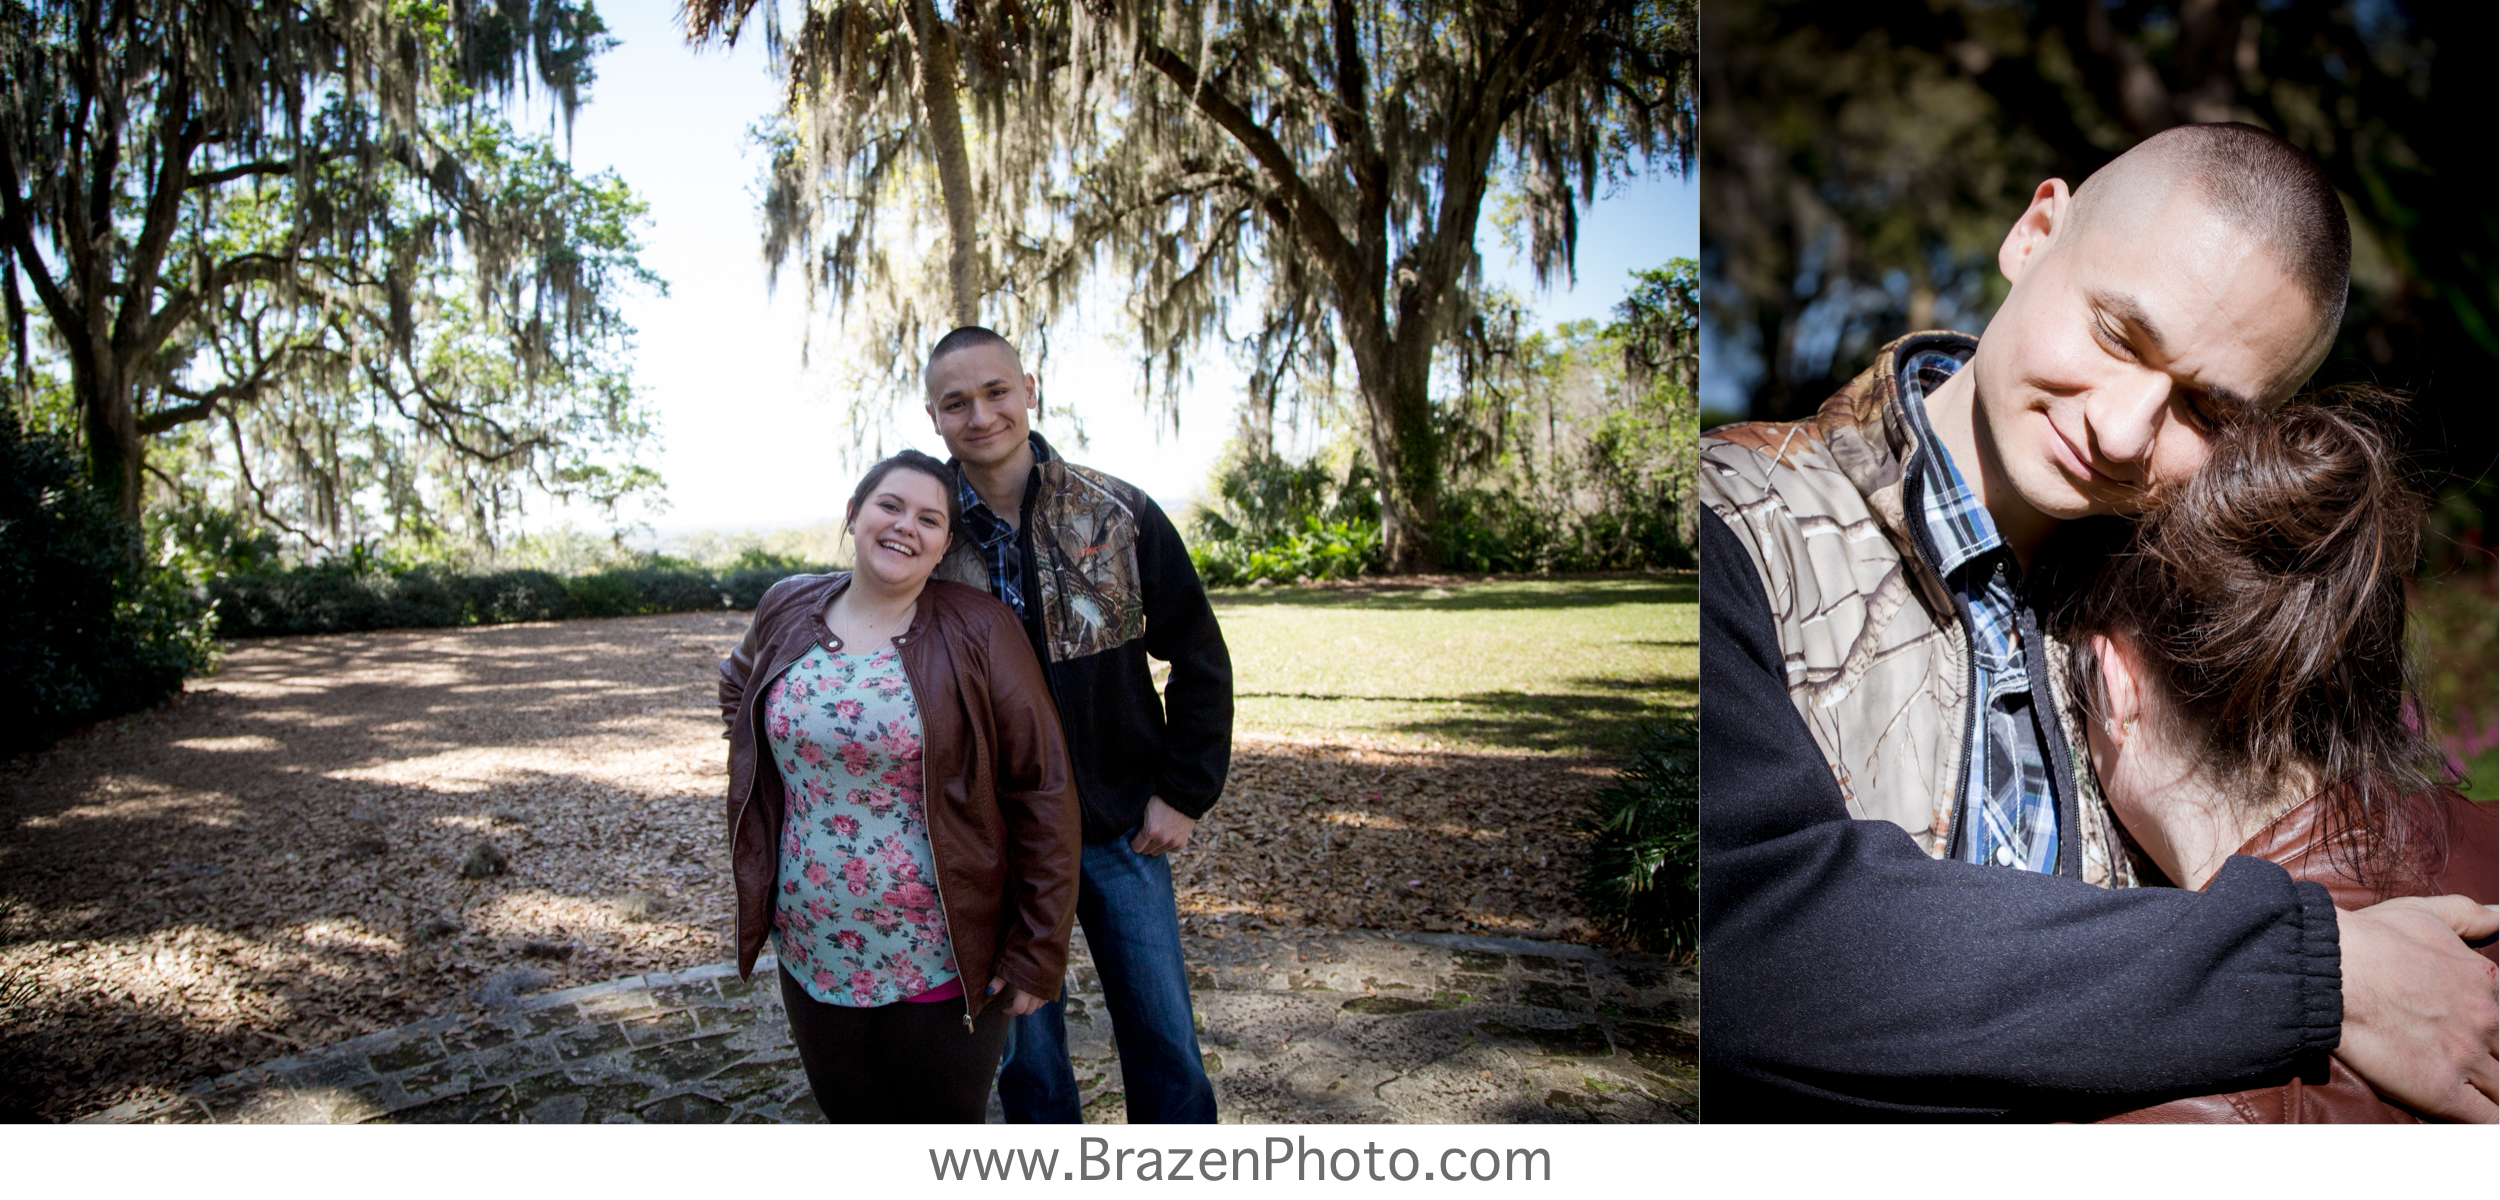 Orlando Wedding photographer-Jon and christiane-61.jpg